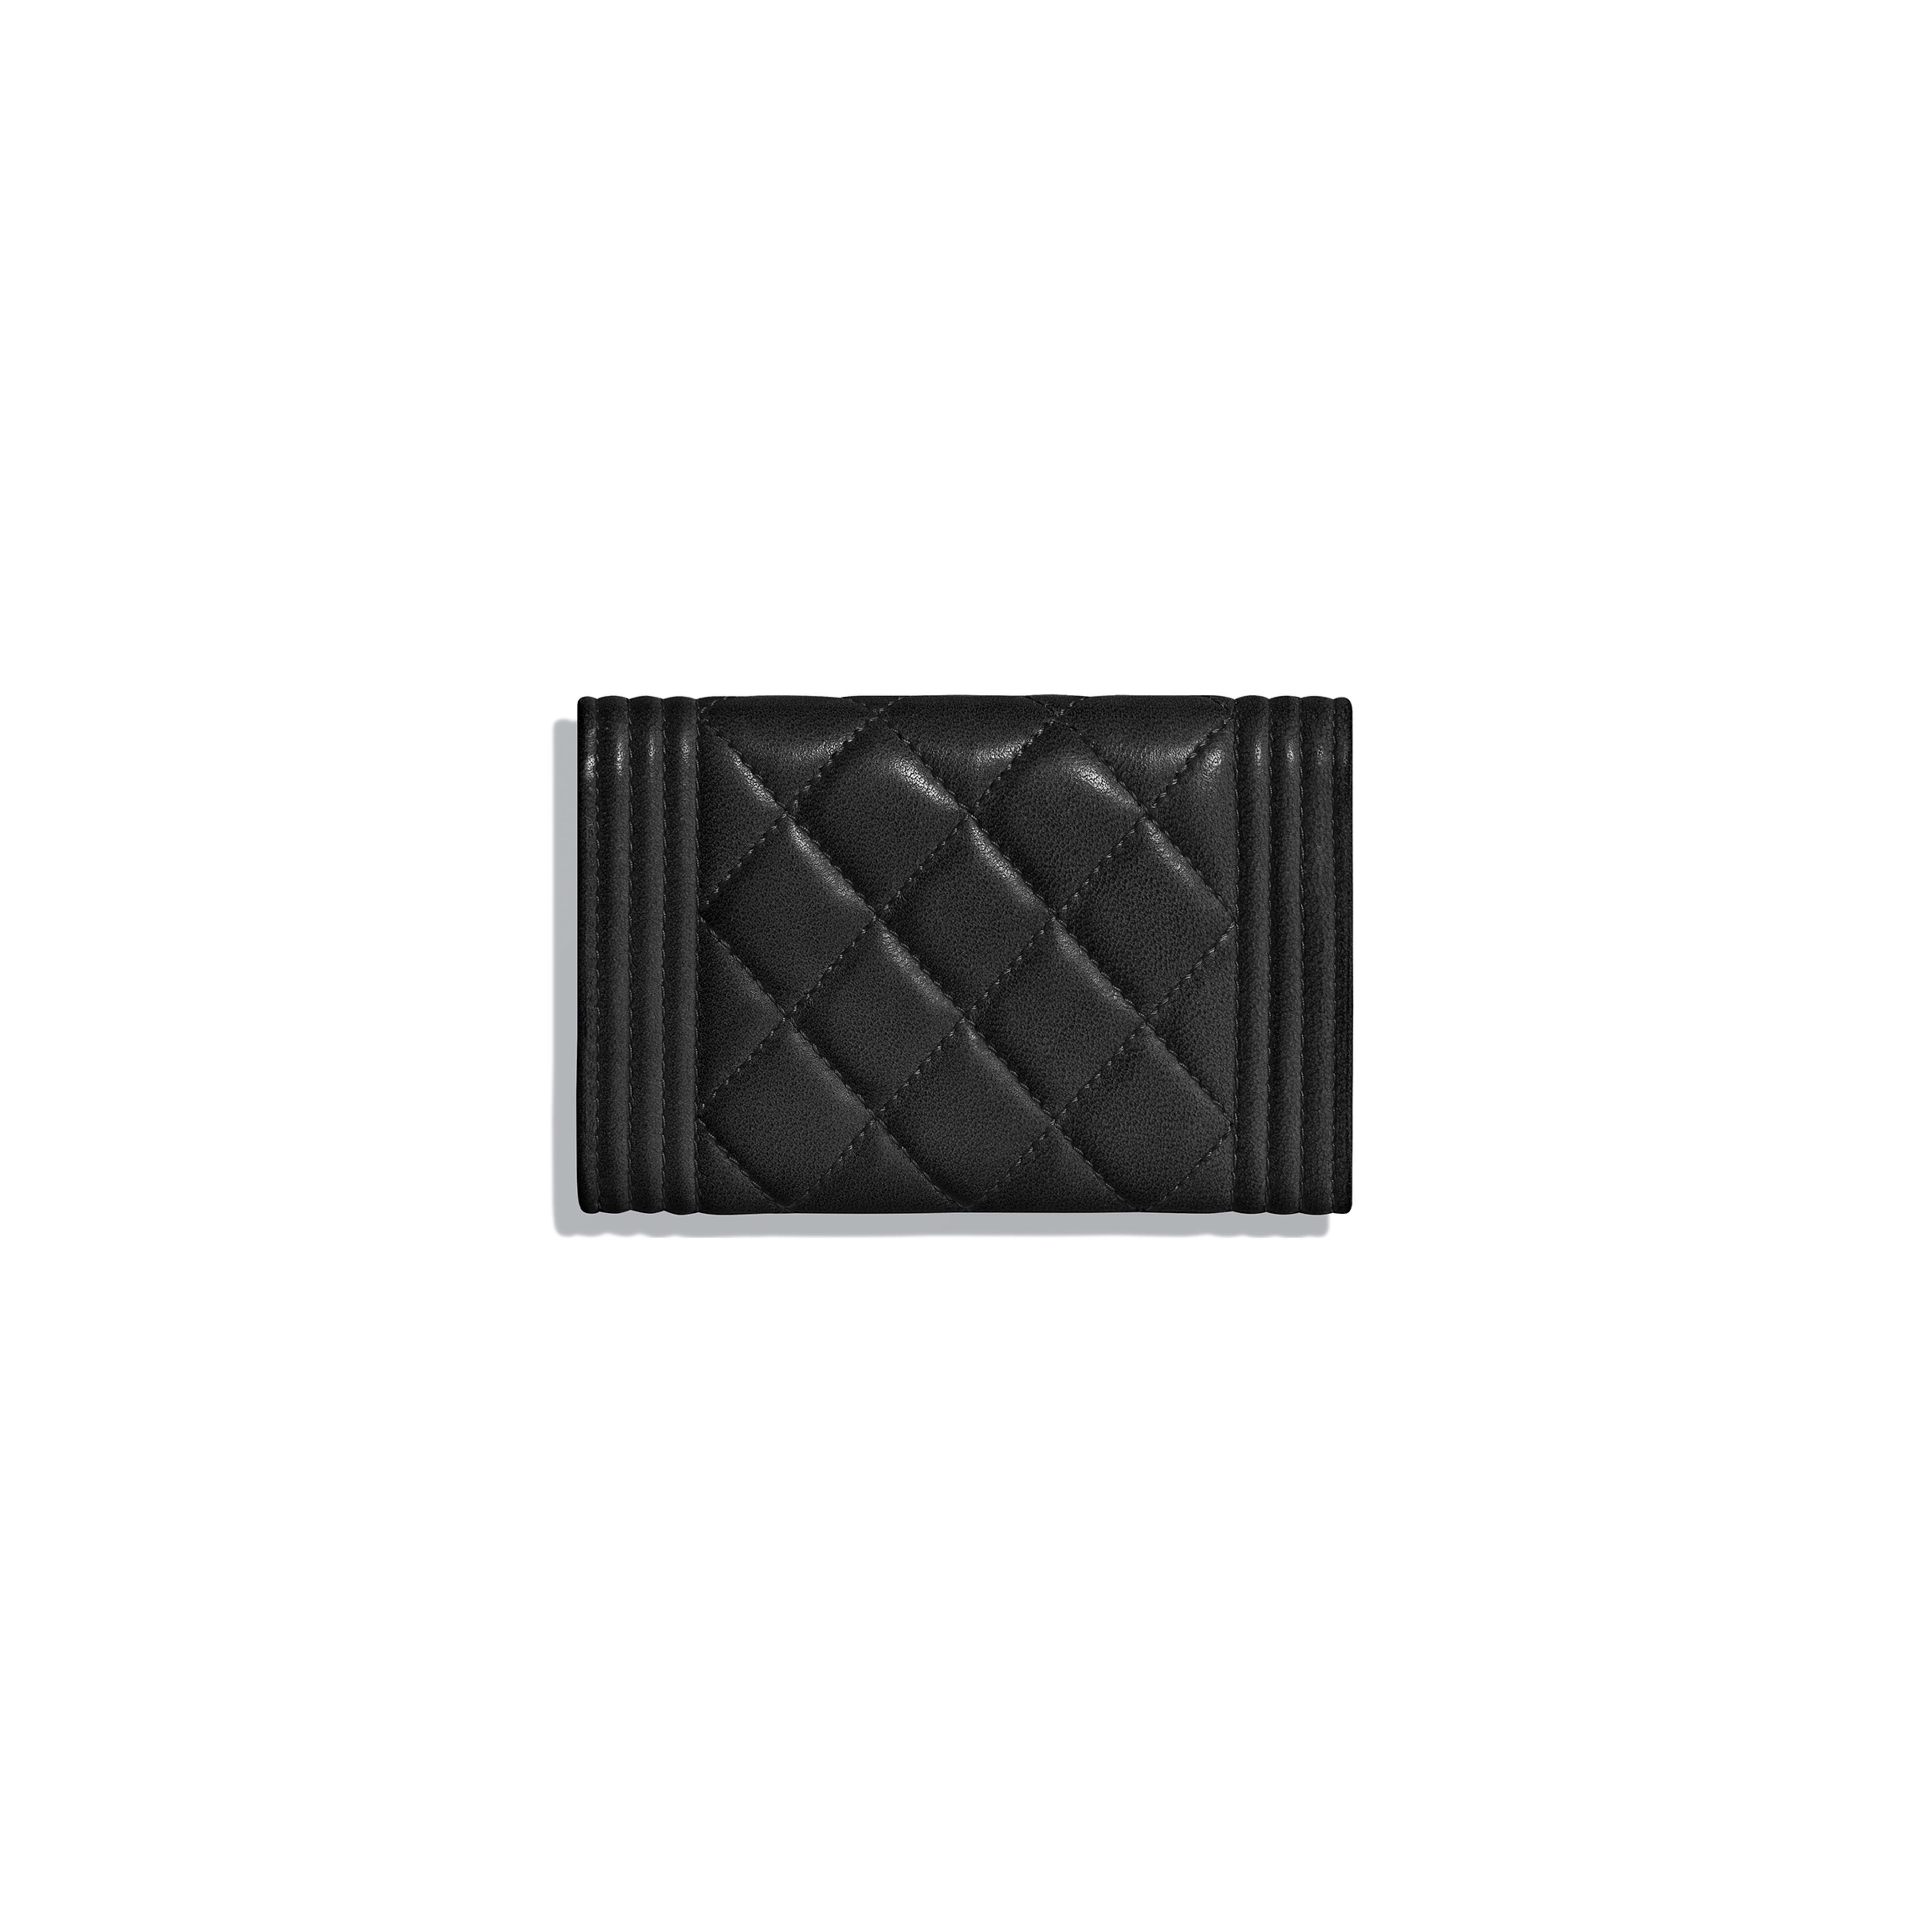 BOY CHANEL Flap Card Holder - Black - Lambskin - Alternative view - see full sized version